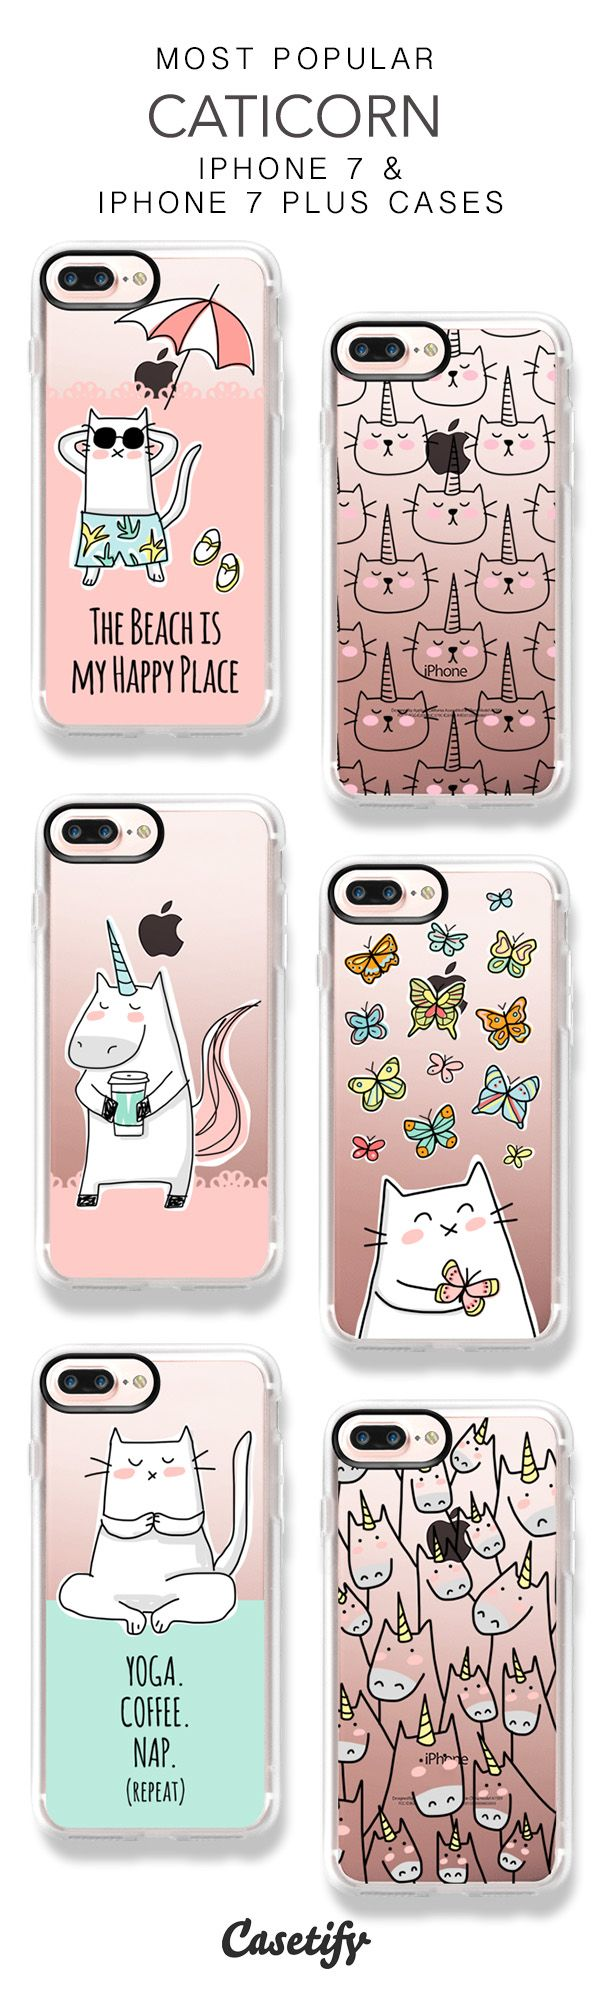 Most Popular Caticorn iPhone 7 Cases & iPhone 7 Plus Cases here > https://www.casetify.com/happycatprints/collection